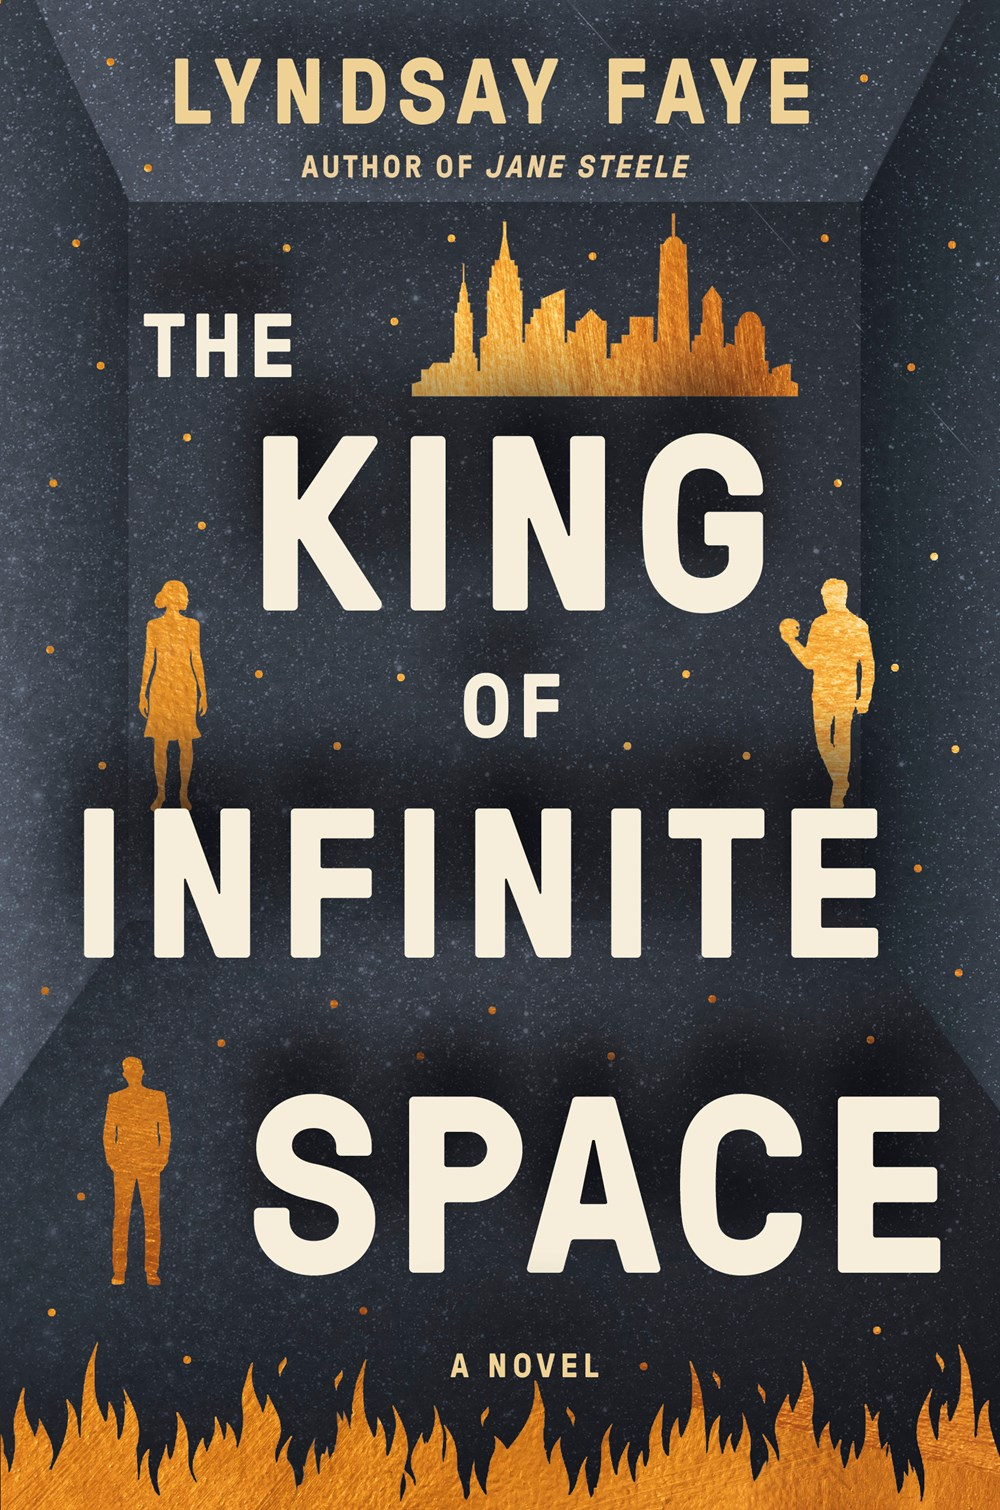 The King of Infinite Space by Lyndsay Faye